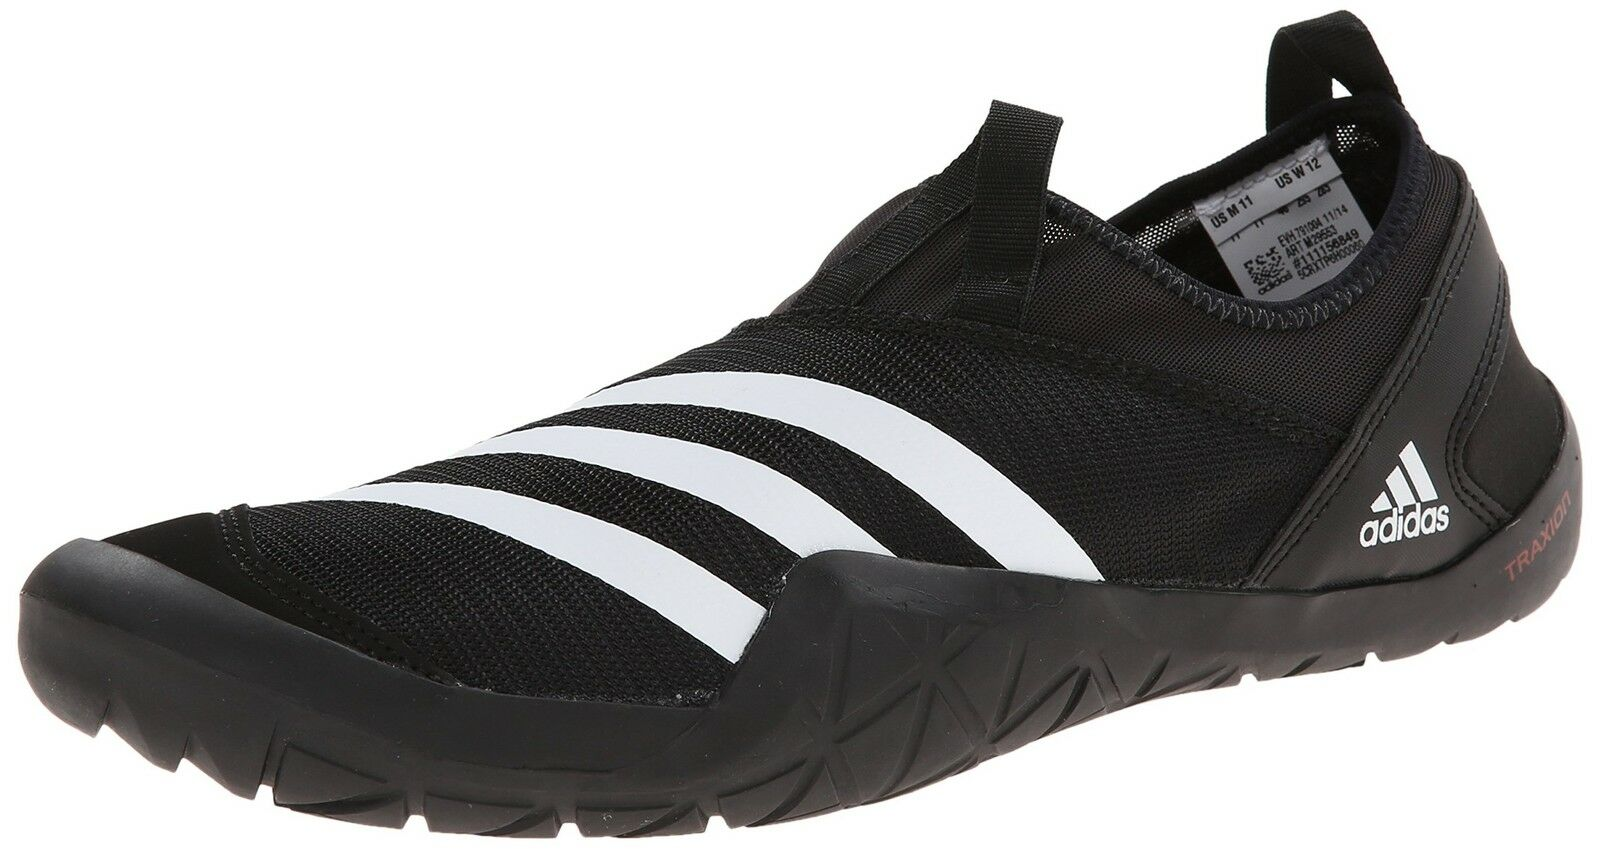 Adidas Outdoor Men's Climacool Jawpaw Slip-on Water Shoe 10 DPrice reduction US